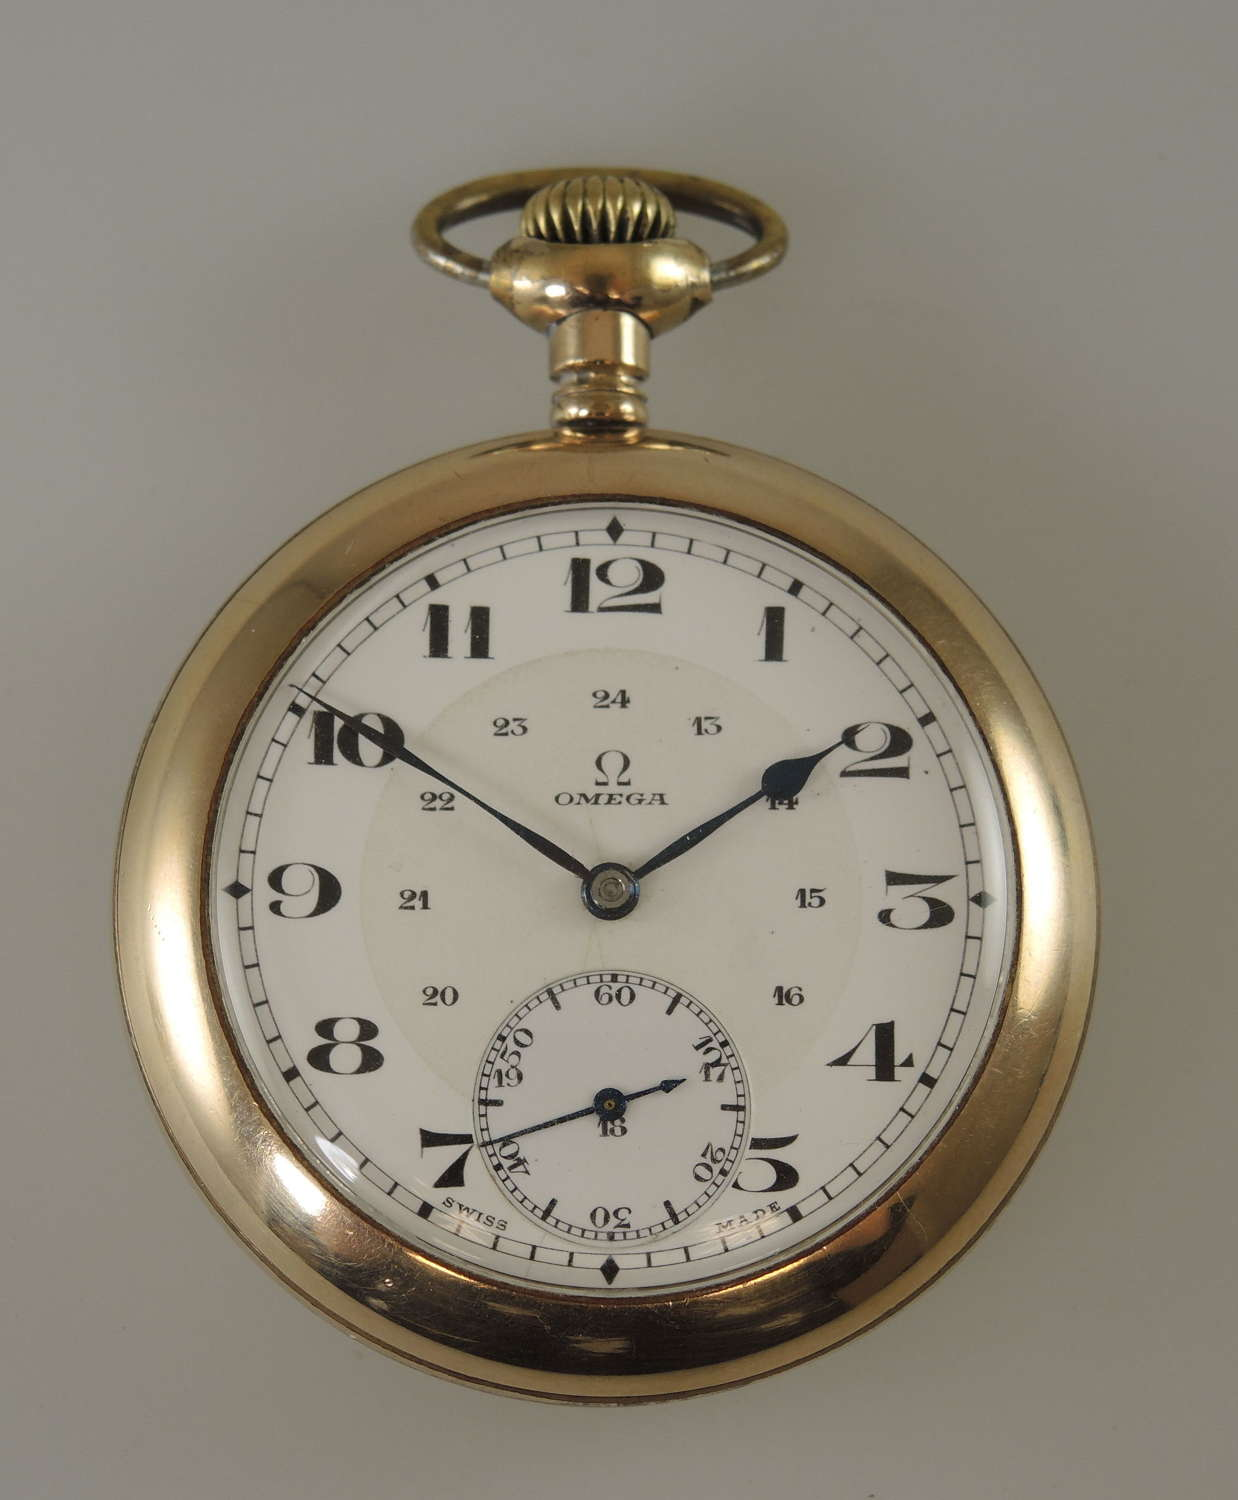 18s 17J Omega pocket watch made for the Canadian market c1918